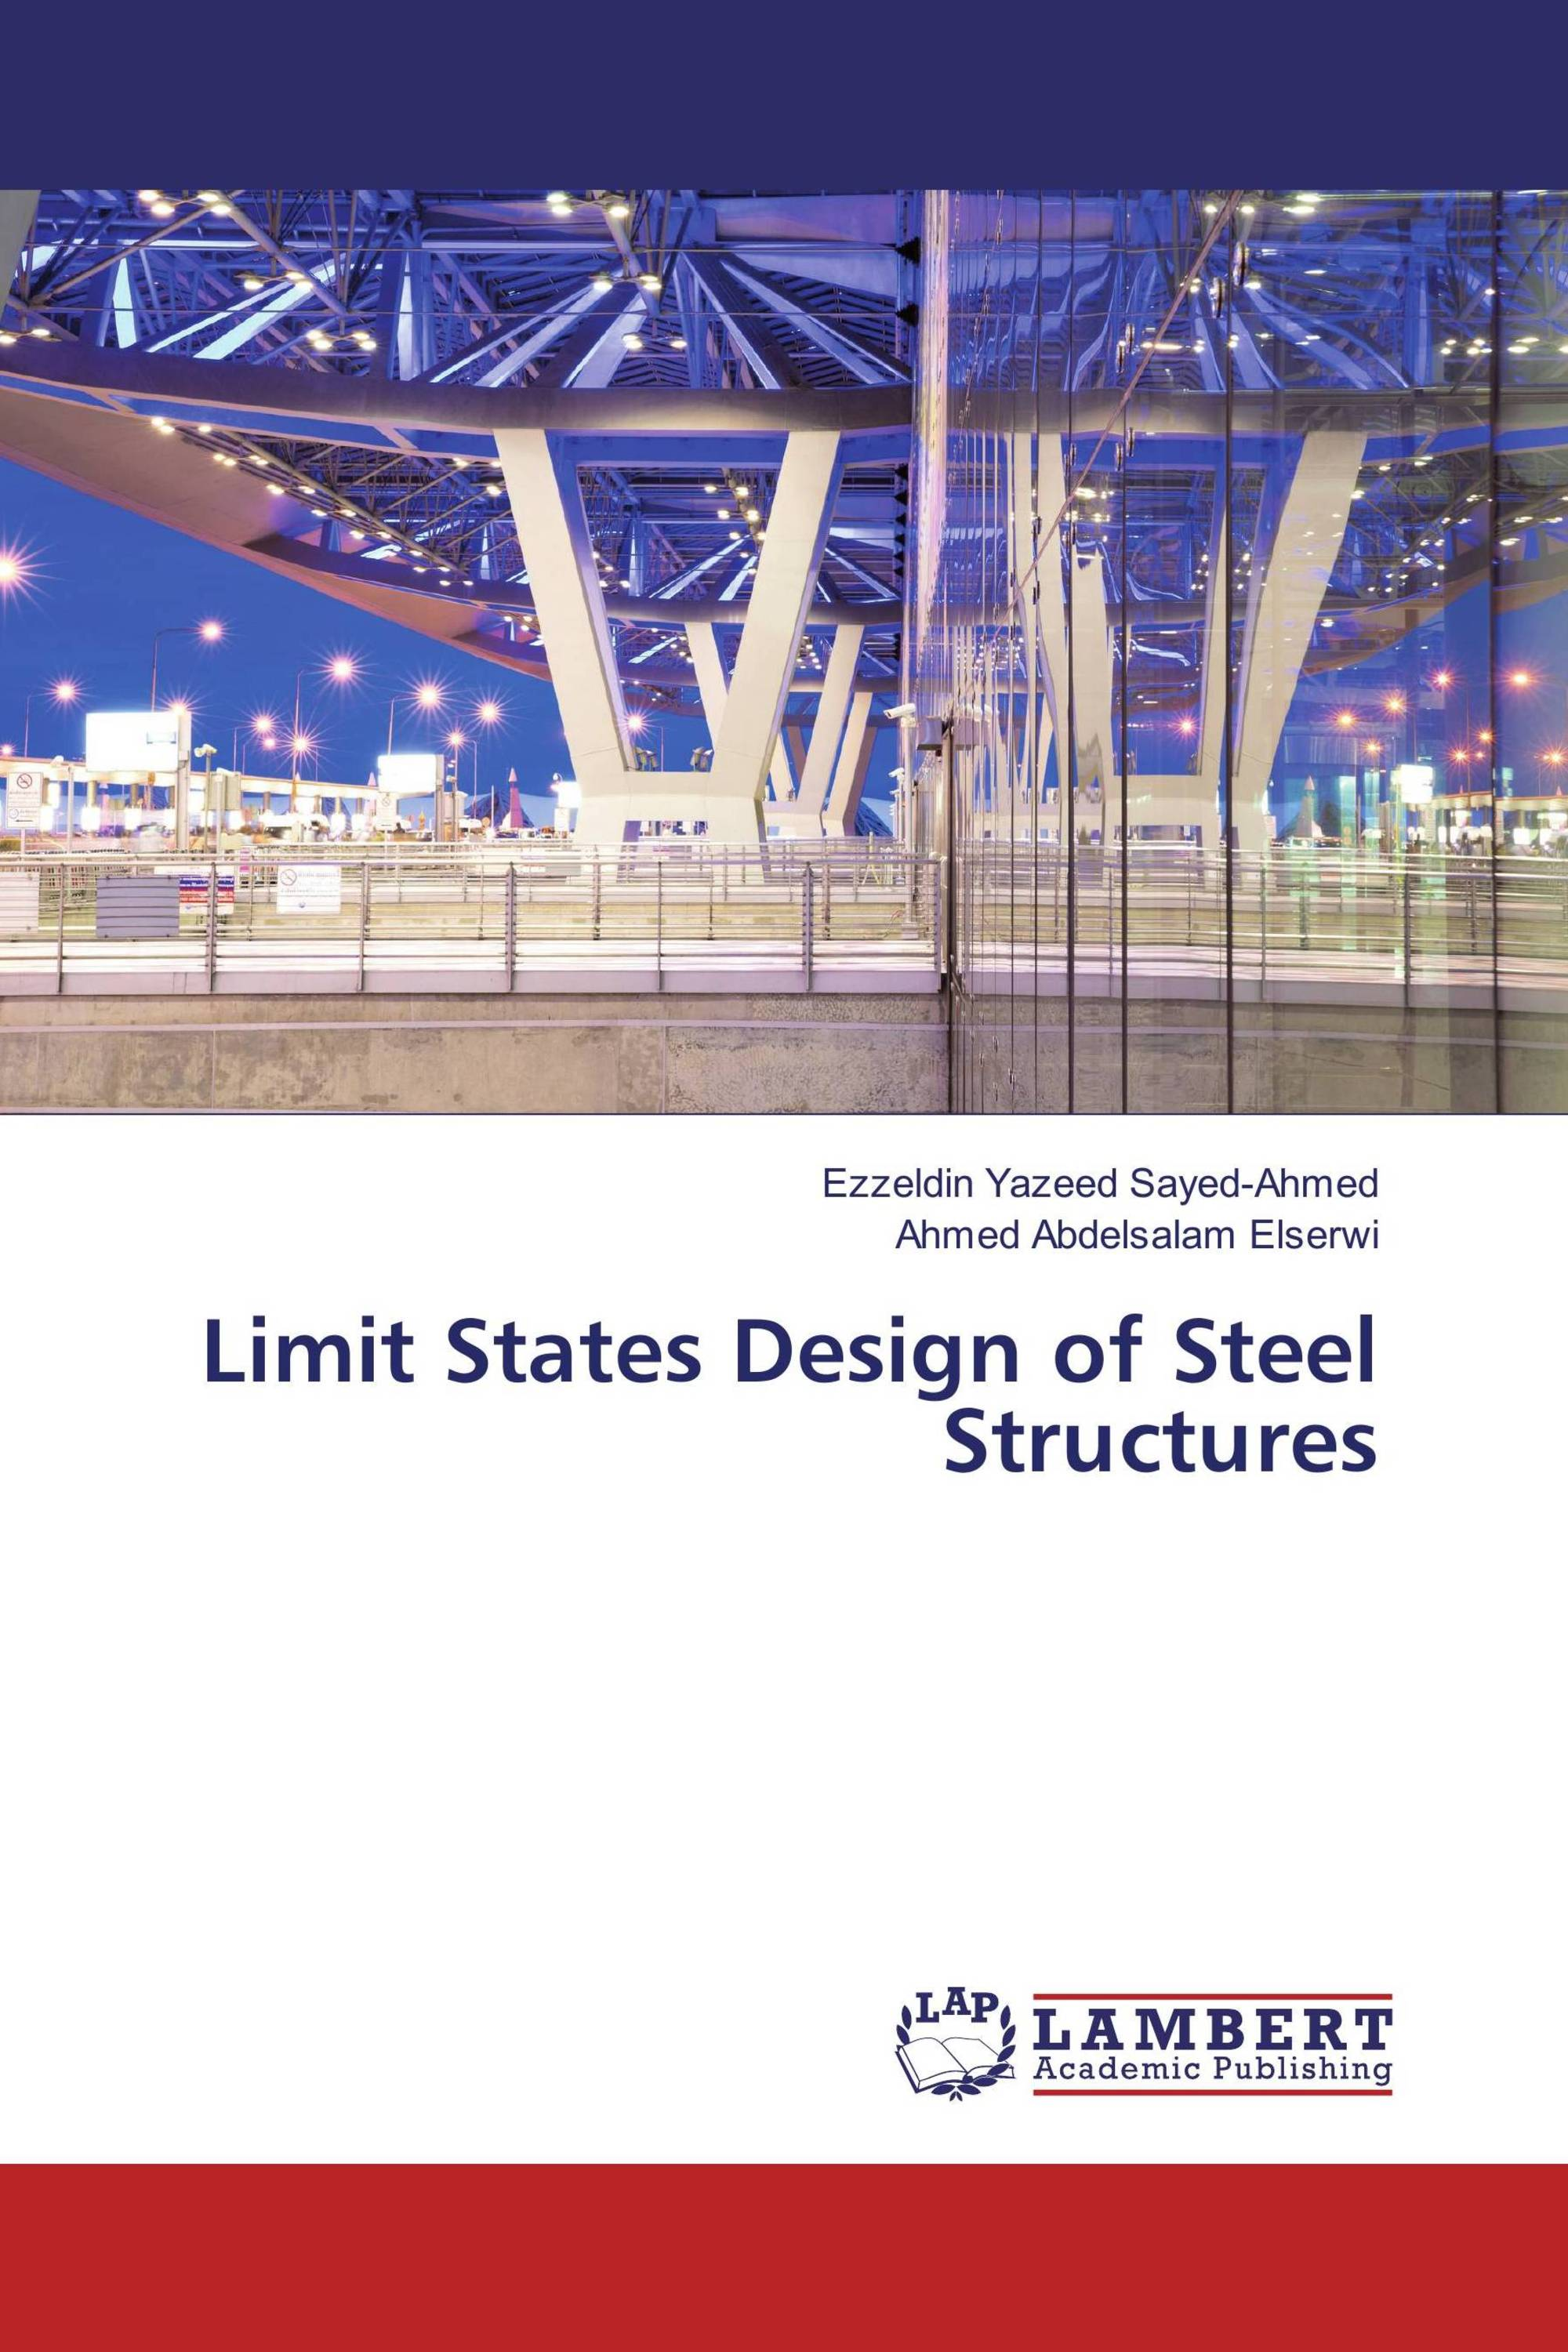 Limit States Design of Steel Structures